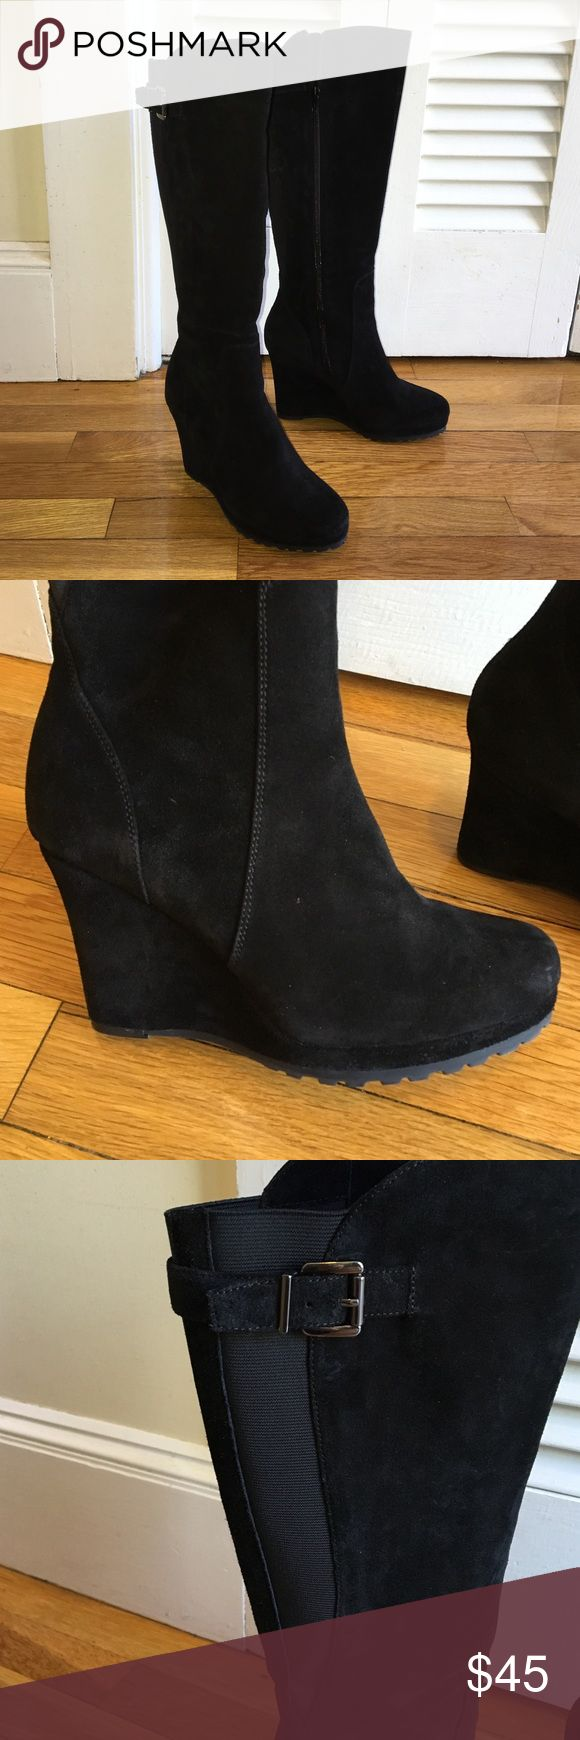 Vaneli black suede wedge boots Knee high black suede wedge boots with zipper and calf strap. Boots have a rubber sole. Worn once. Comes in original box. Vaneli Shoes Heeled Boots